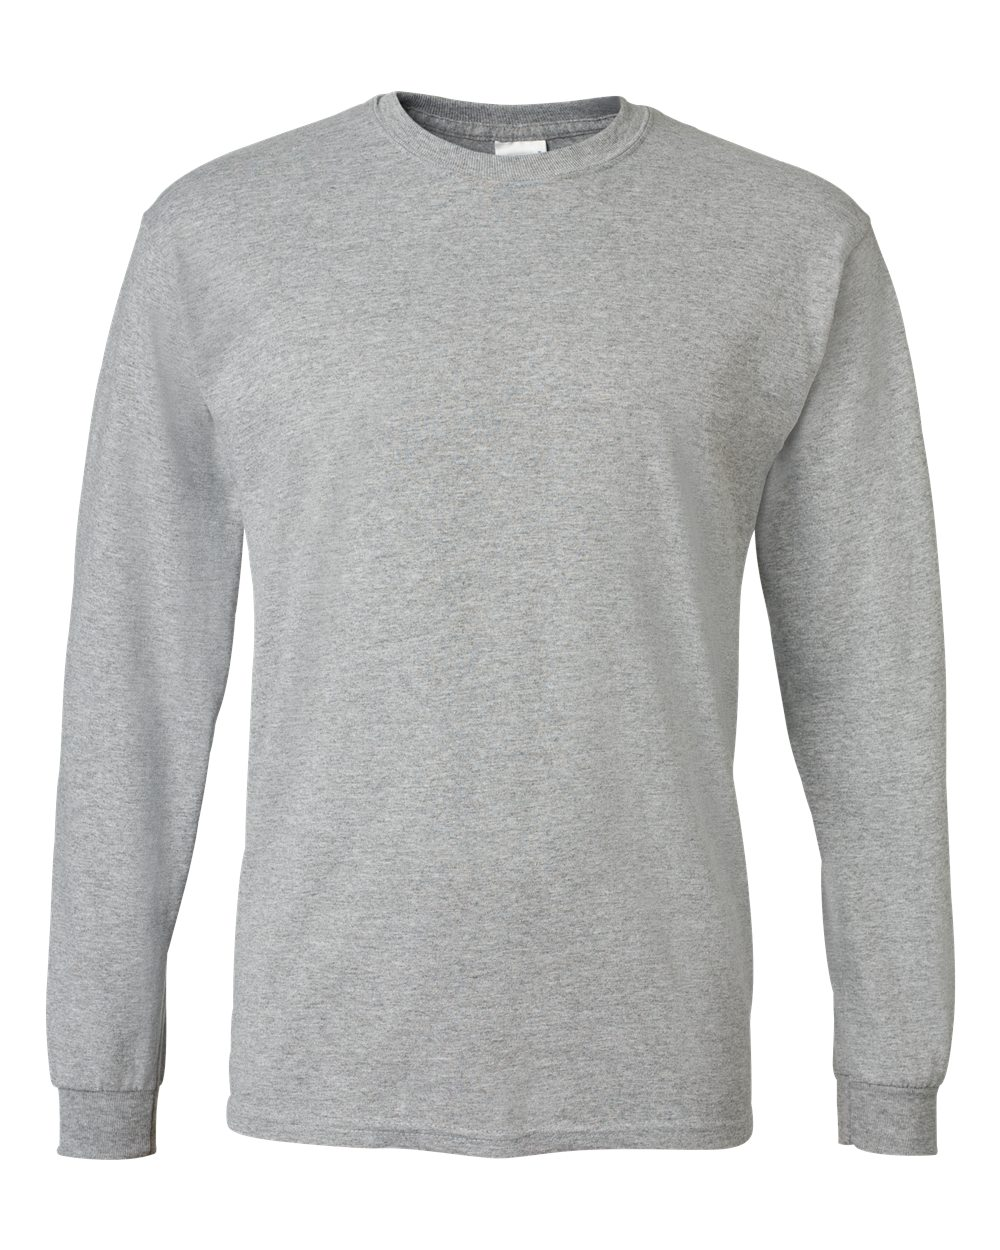 fb5a2661aaf Gildan 8400 - DryBlend™ 50 50 Long Sleeve T-Shirt